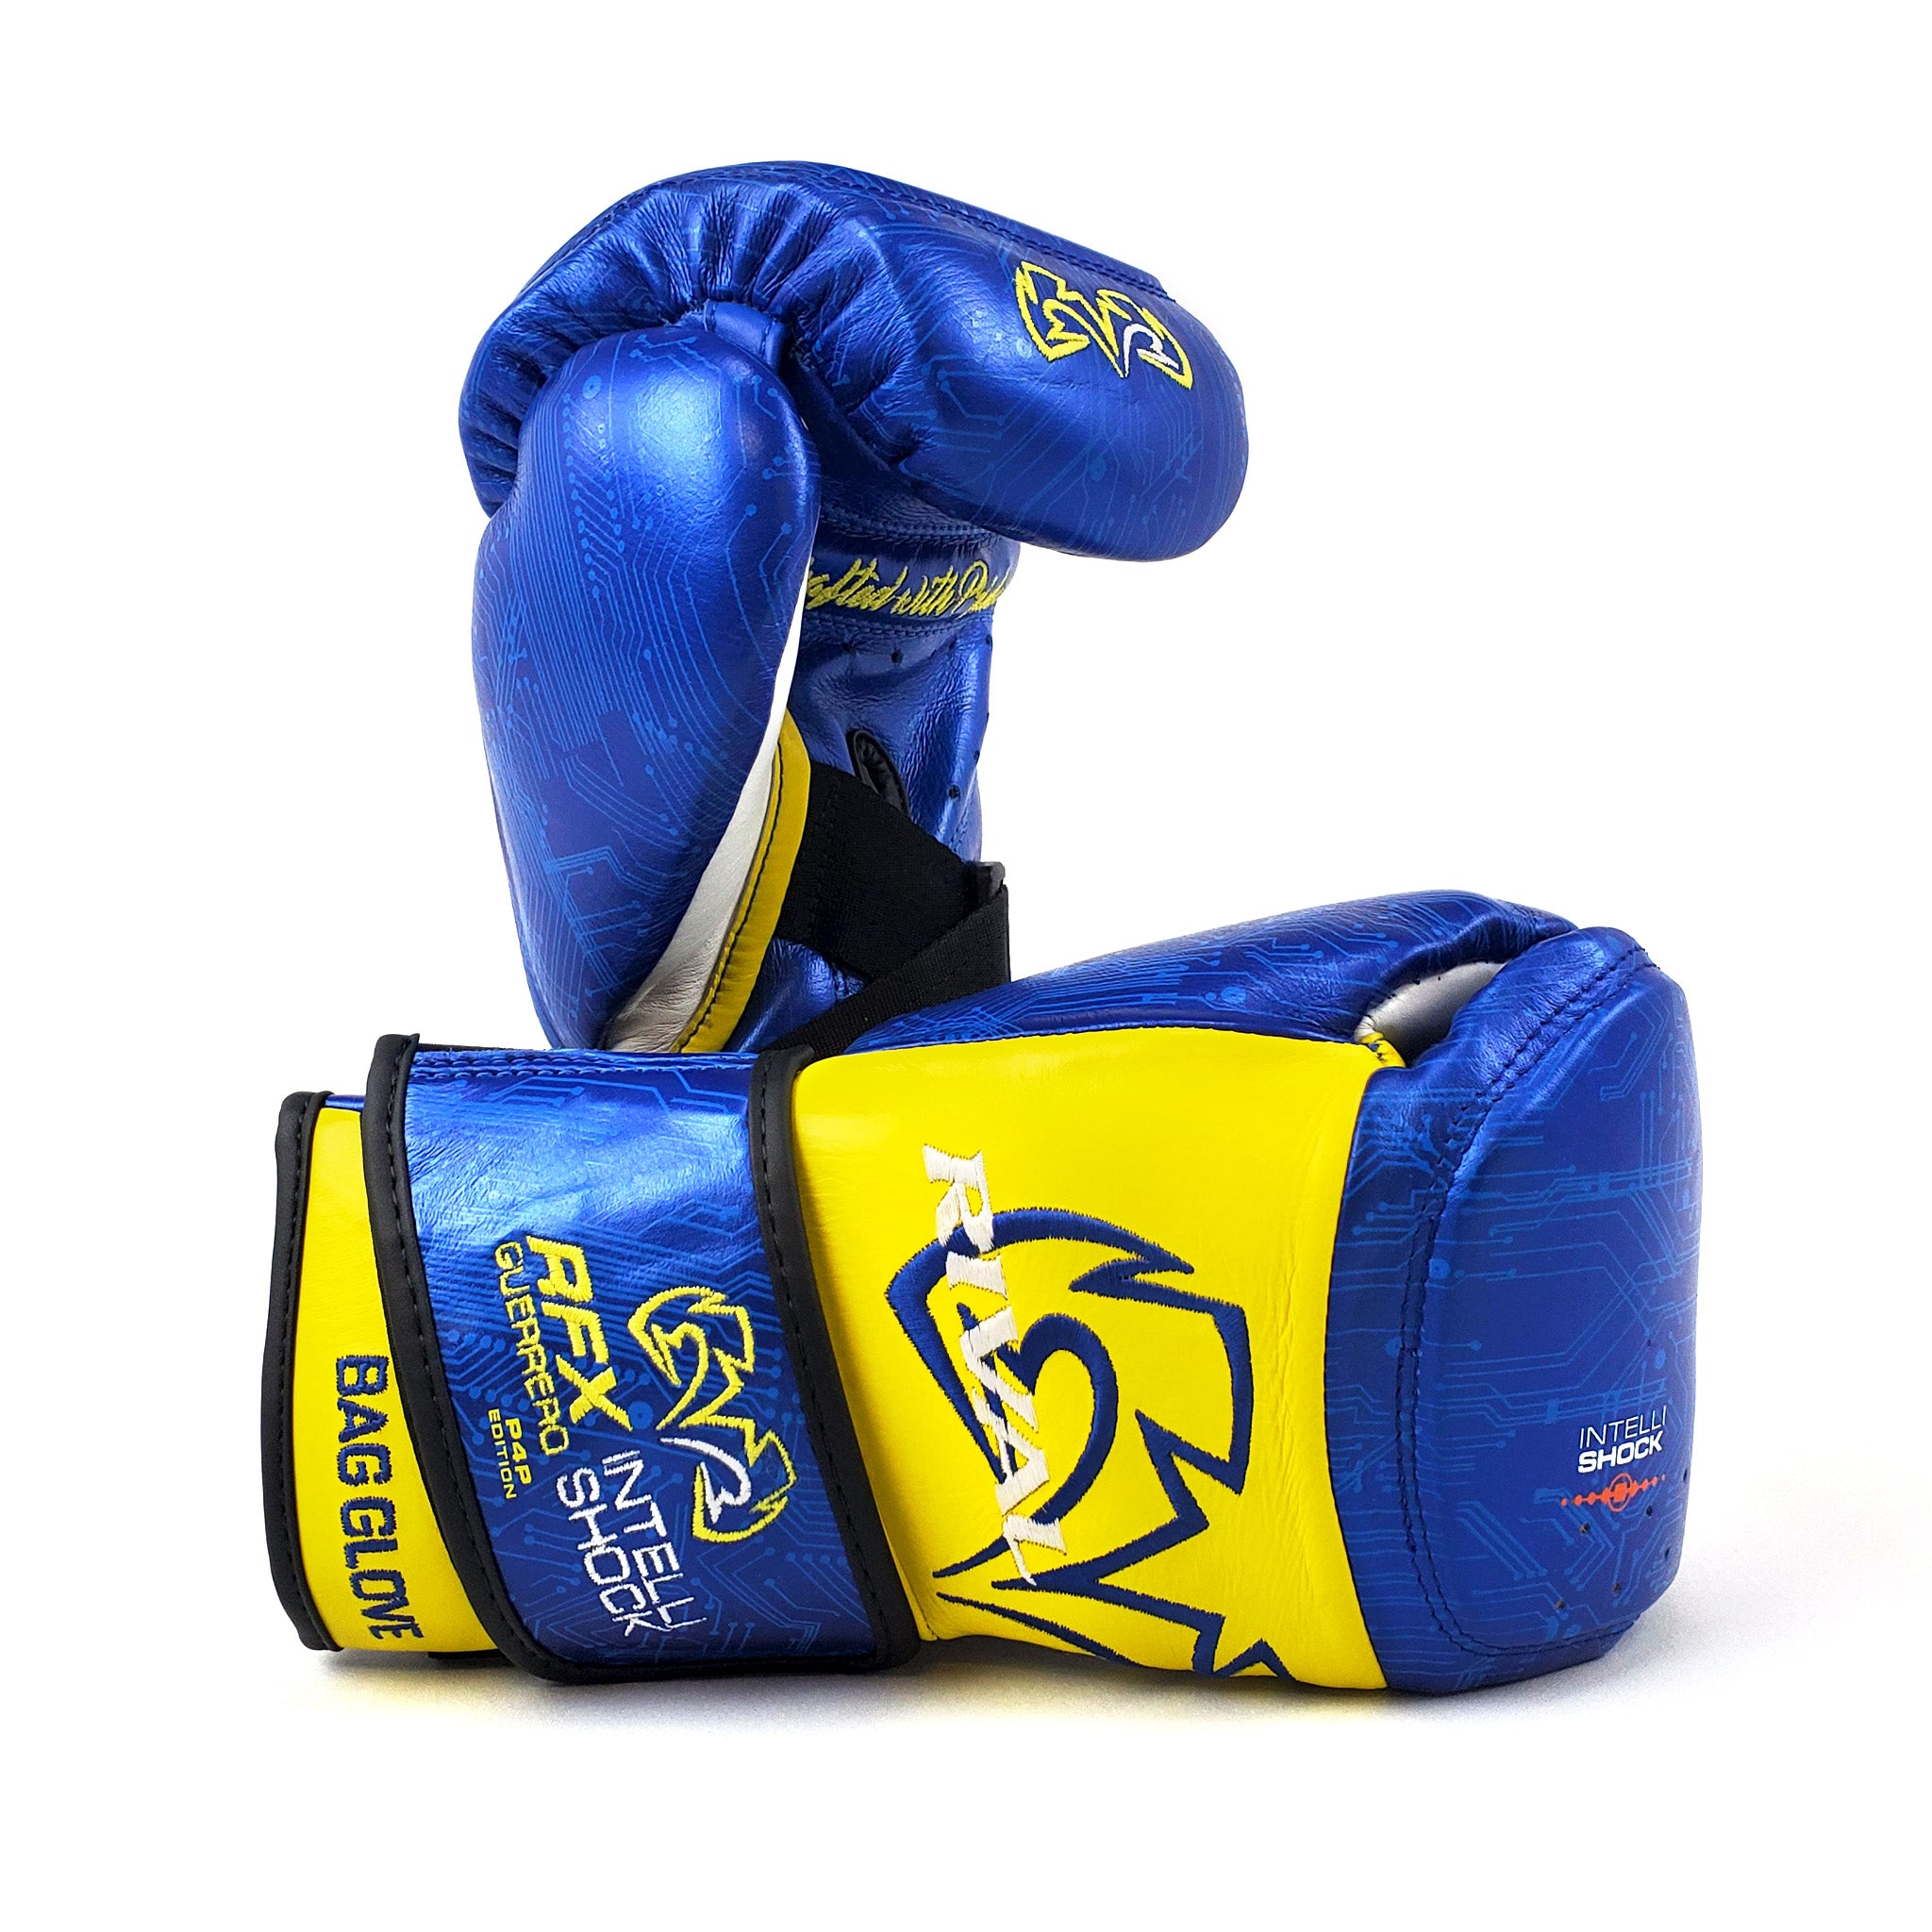 RIVAL RB5 BOXING BAG MITTS